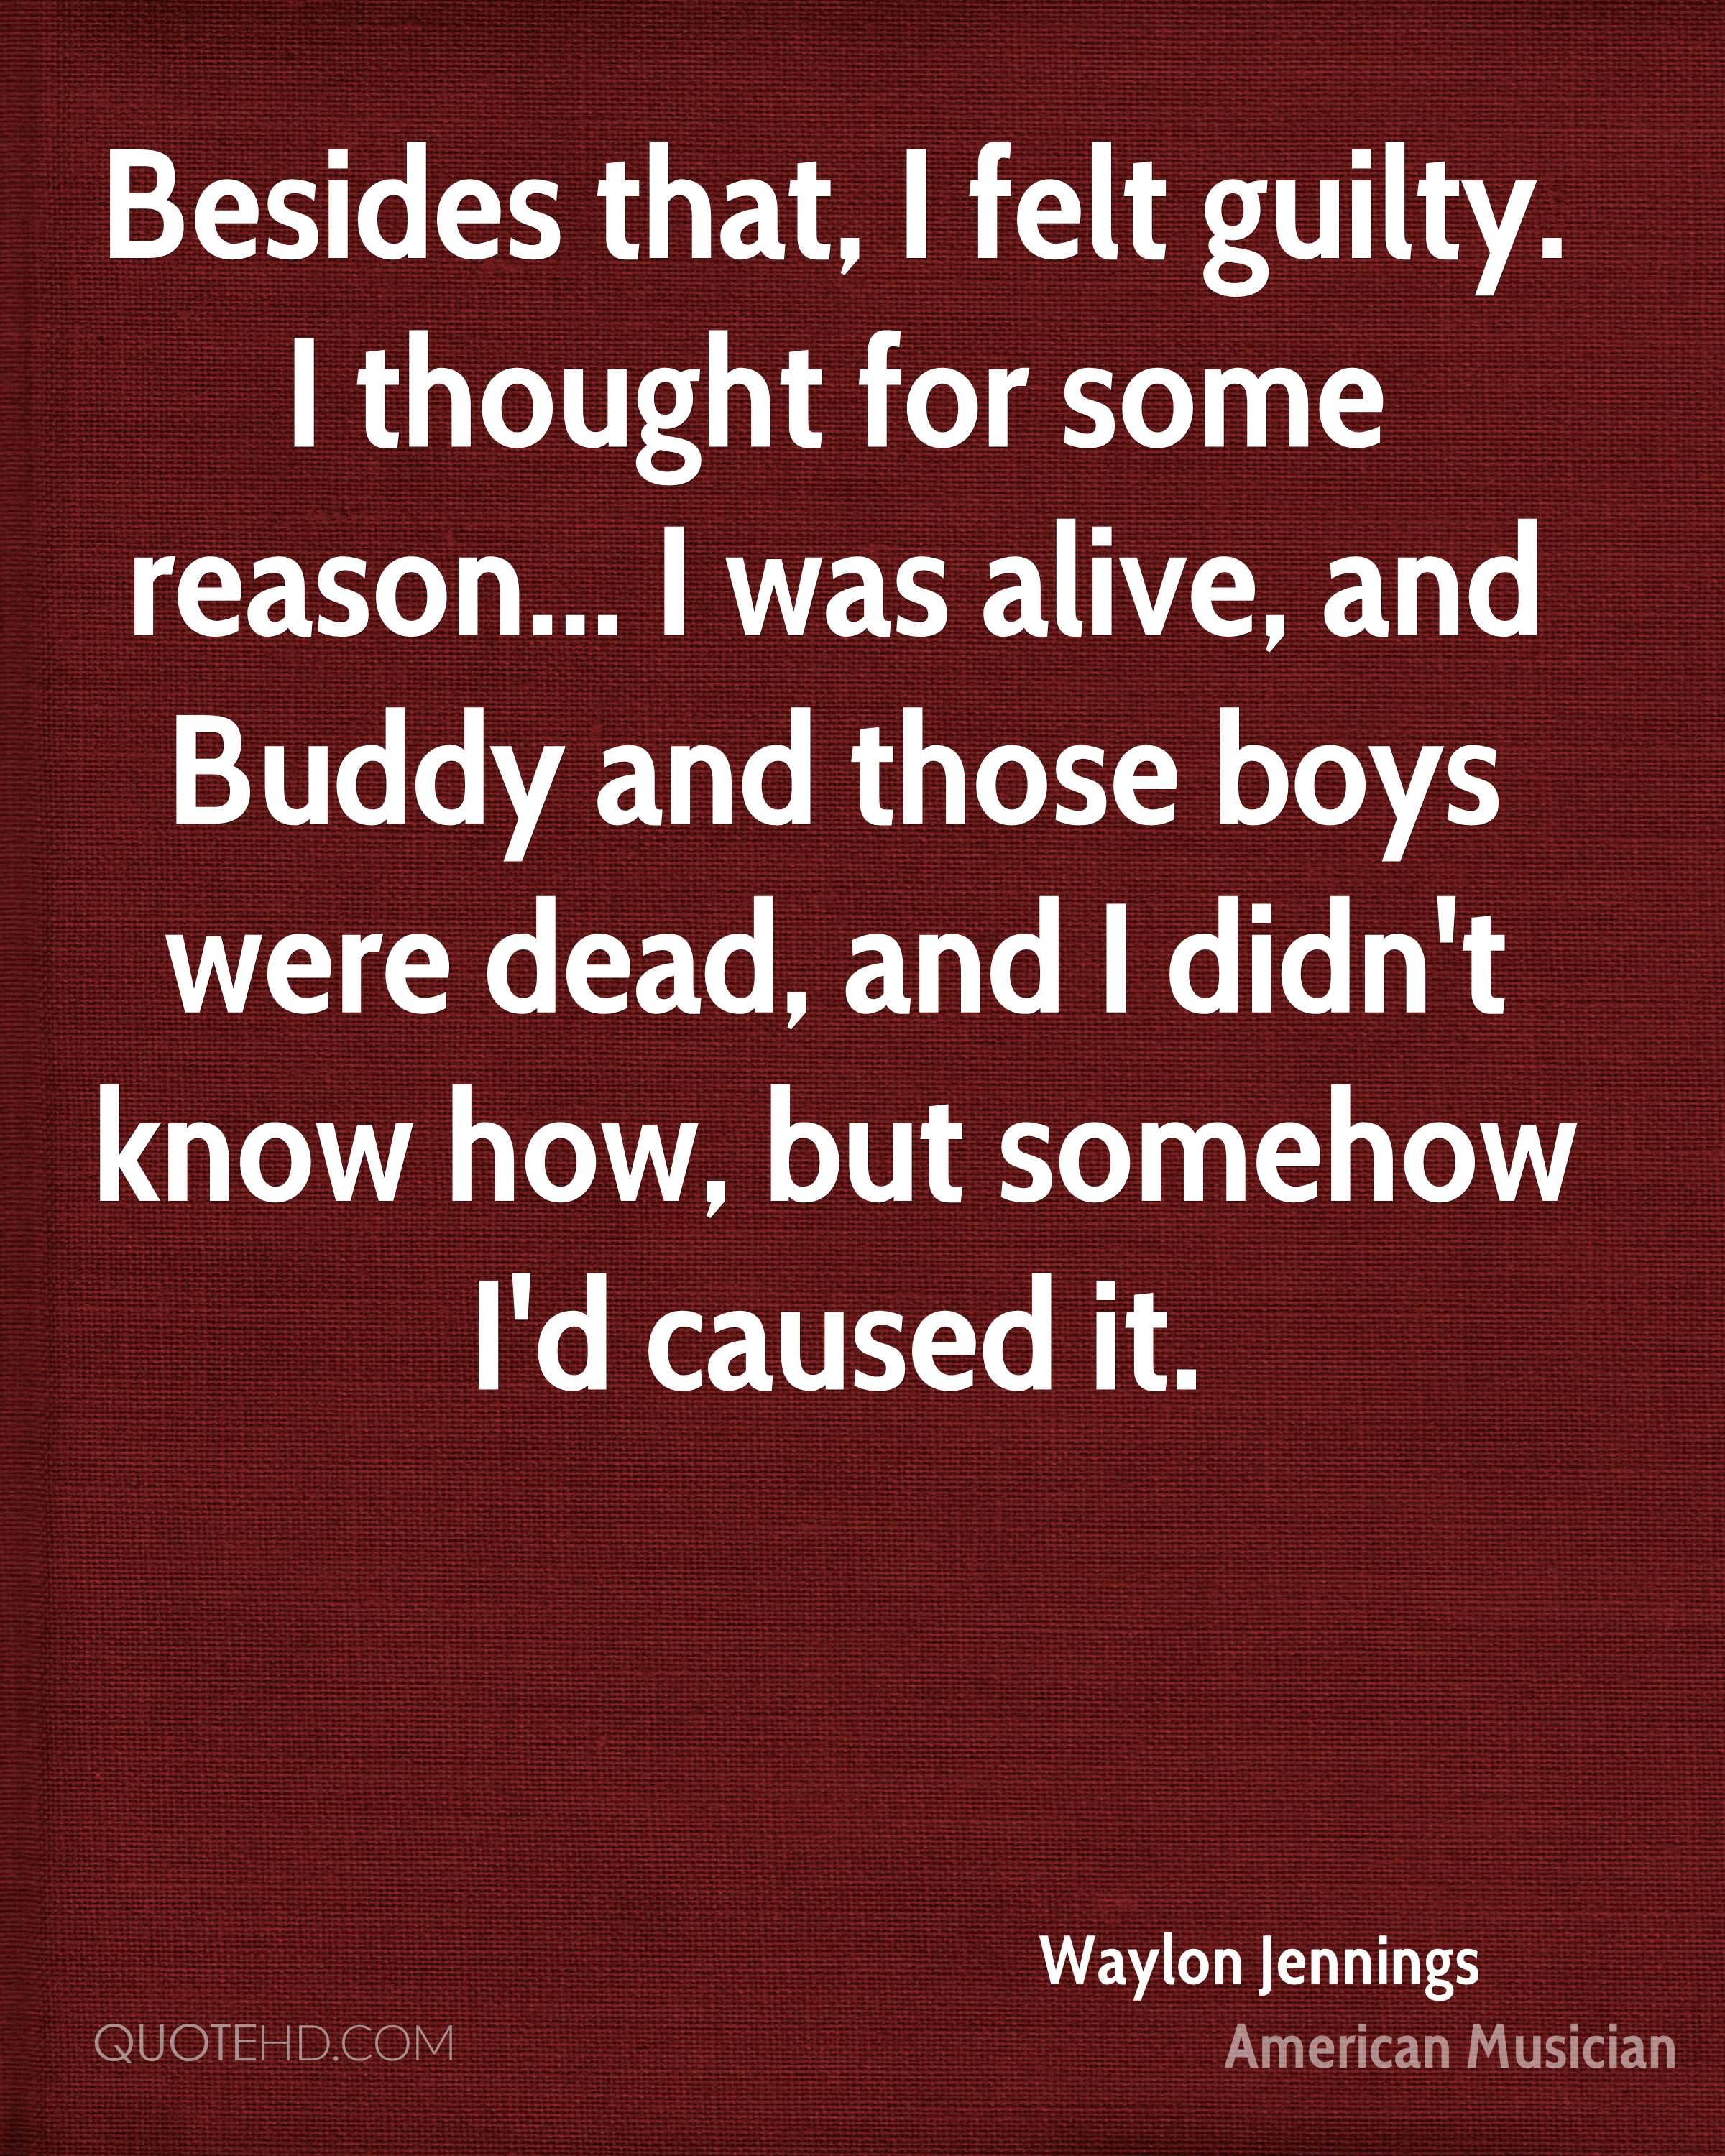 Besides that, I felt guilty. I thought for some reason... I was alive, and Buddy and those boys were dead, and I didn't know how, but somehow I'd caused it.